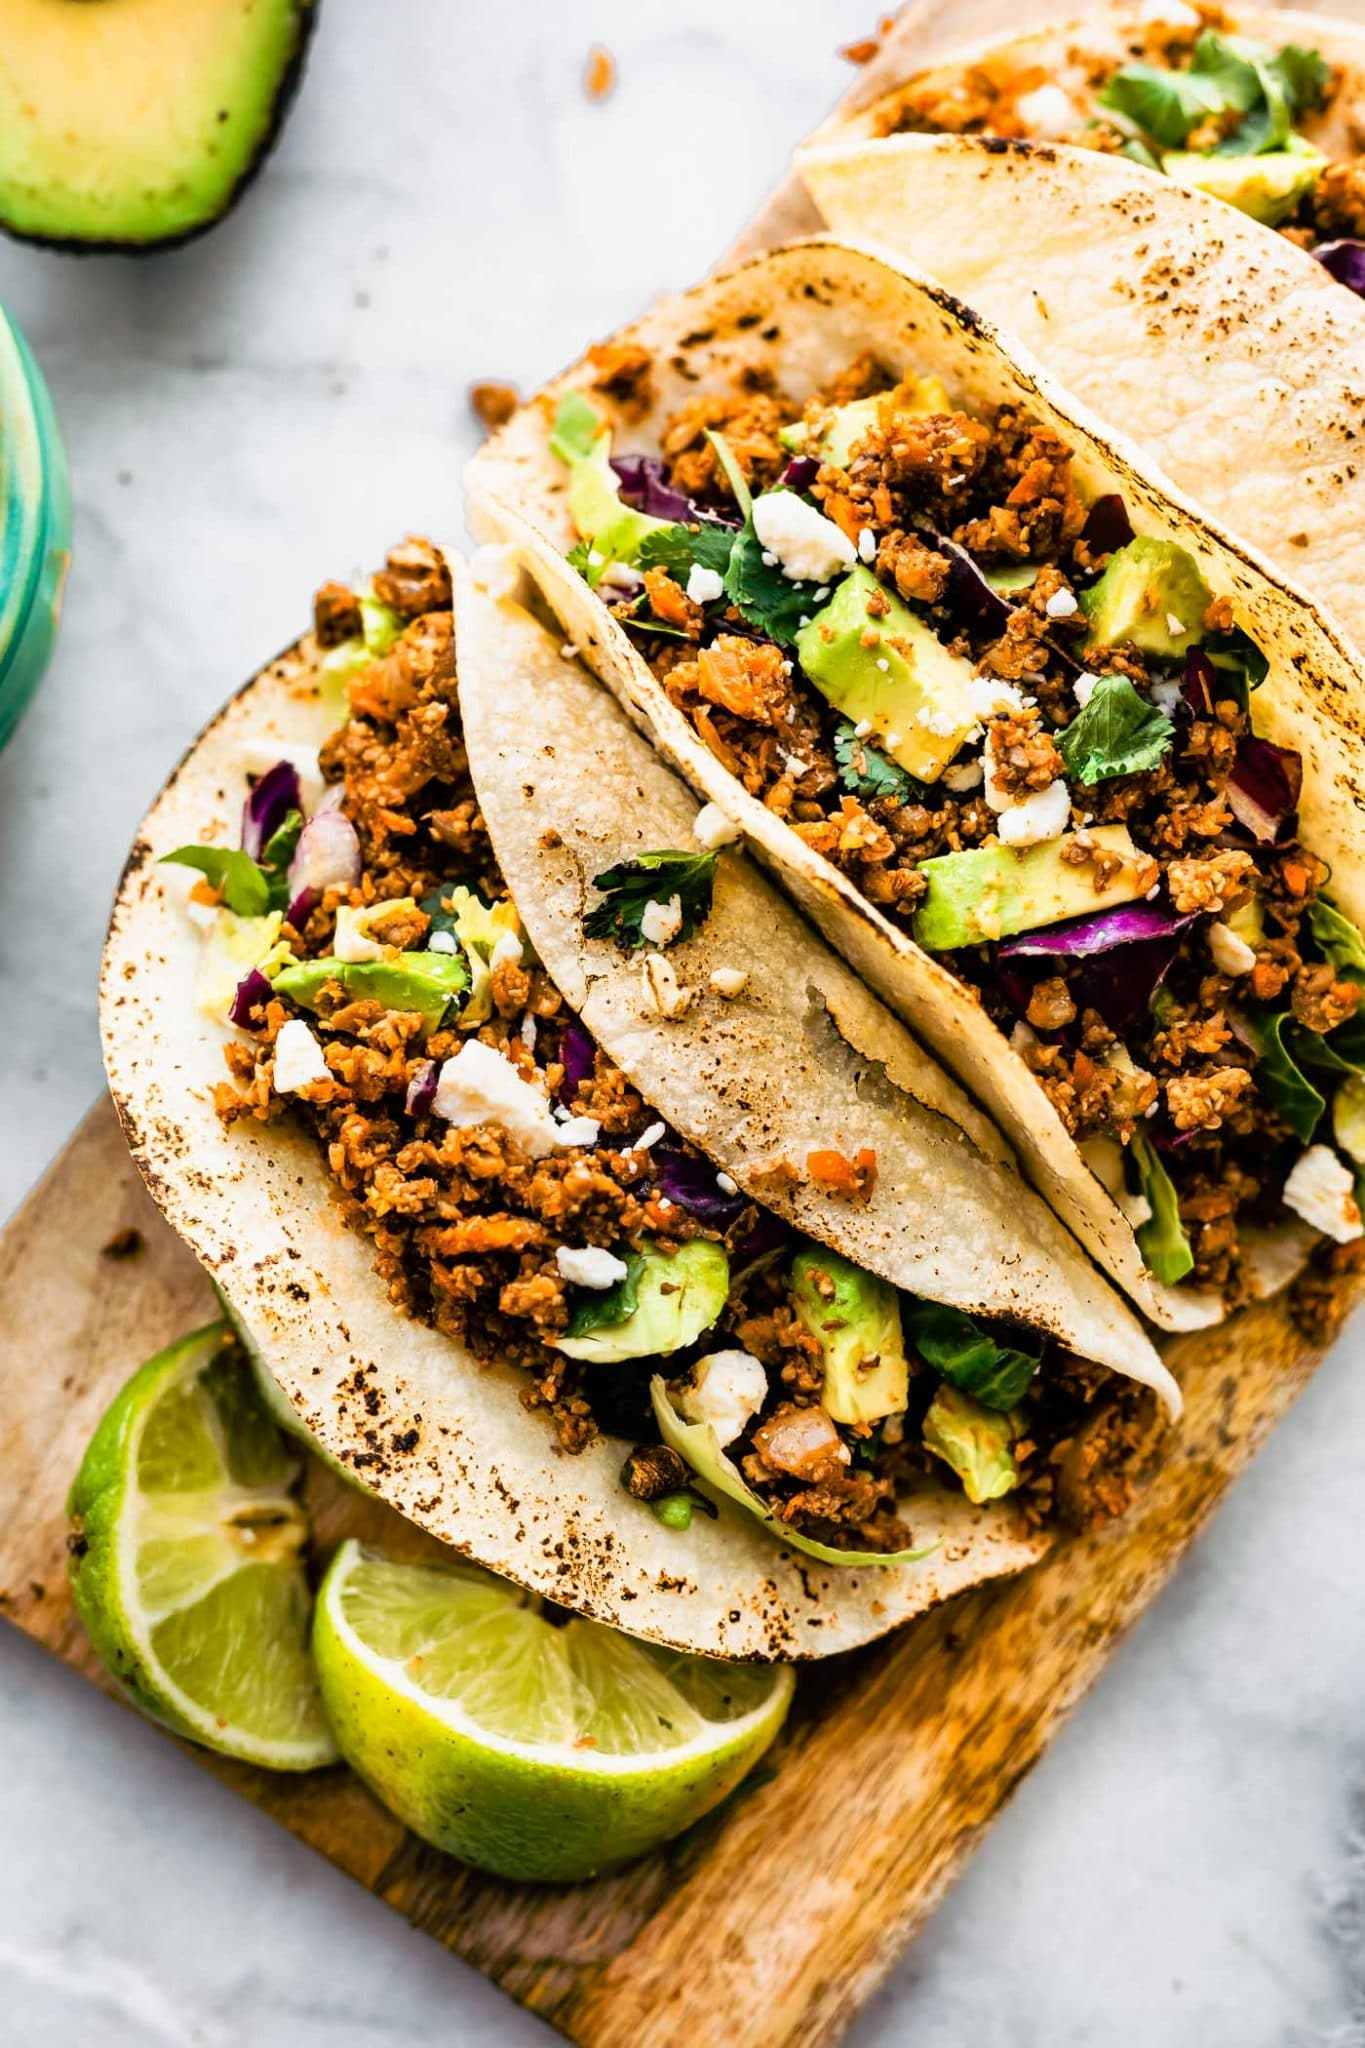 Overhead close up image of vegan taco meat in tortillas with avocado, cilantro, lime wedges, on a wooden platter.